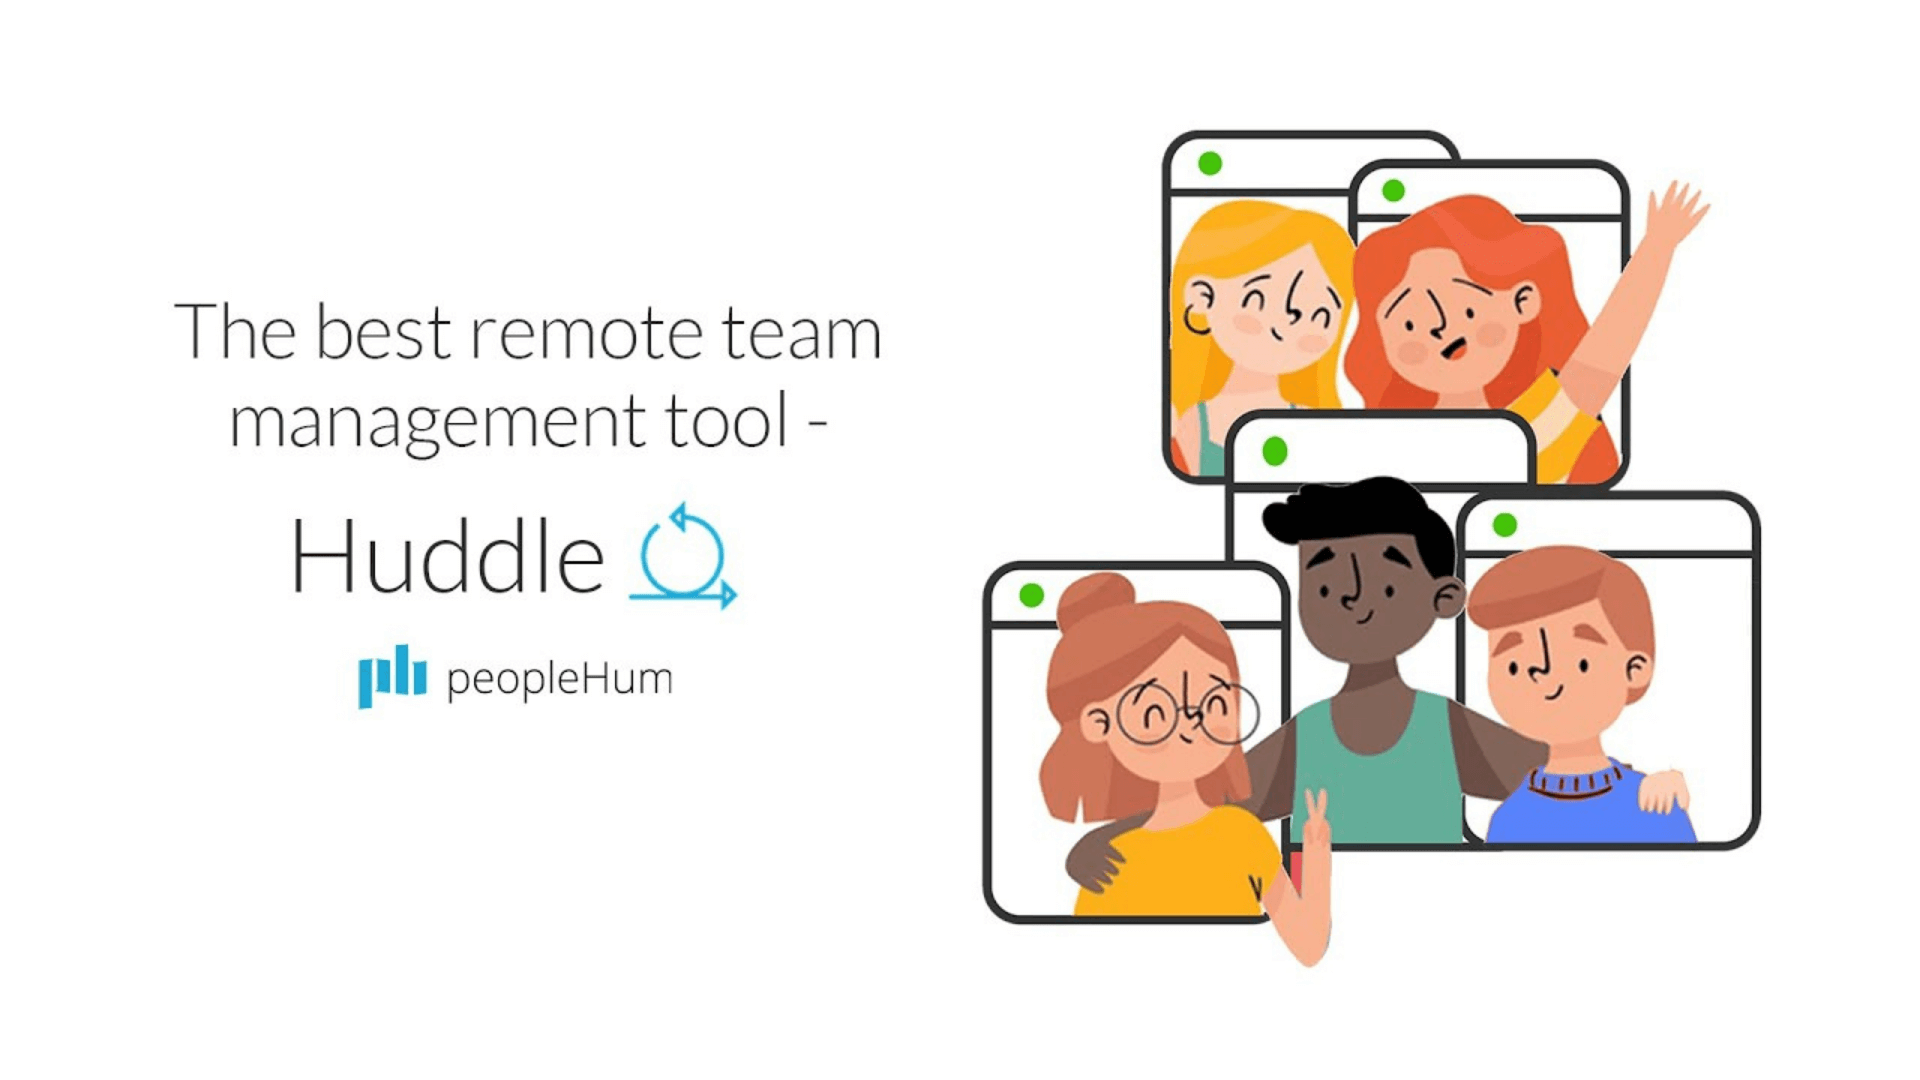 Introducing Huddle- Remote team management tool for winning teams